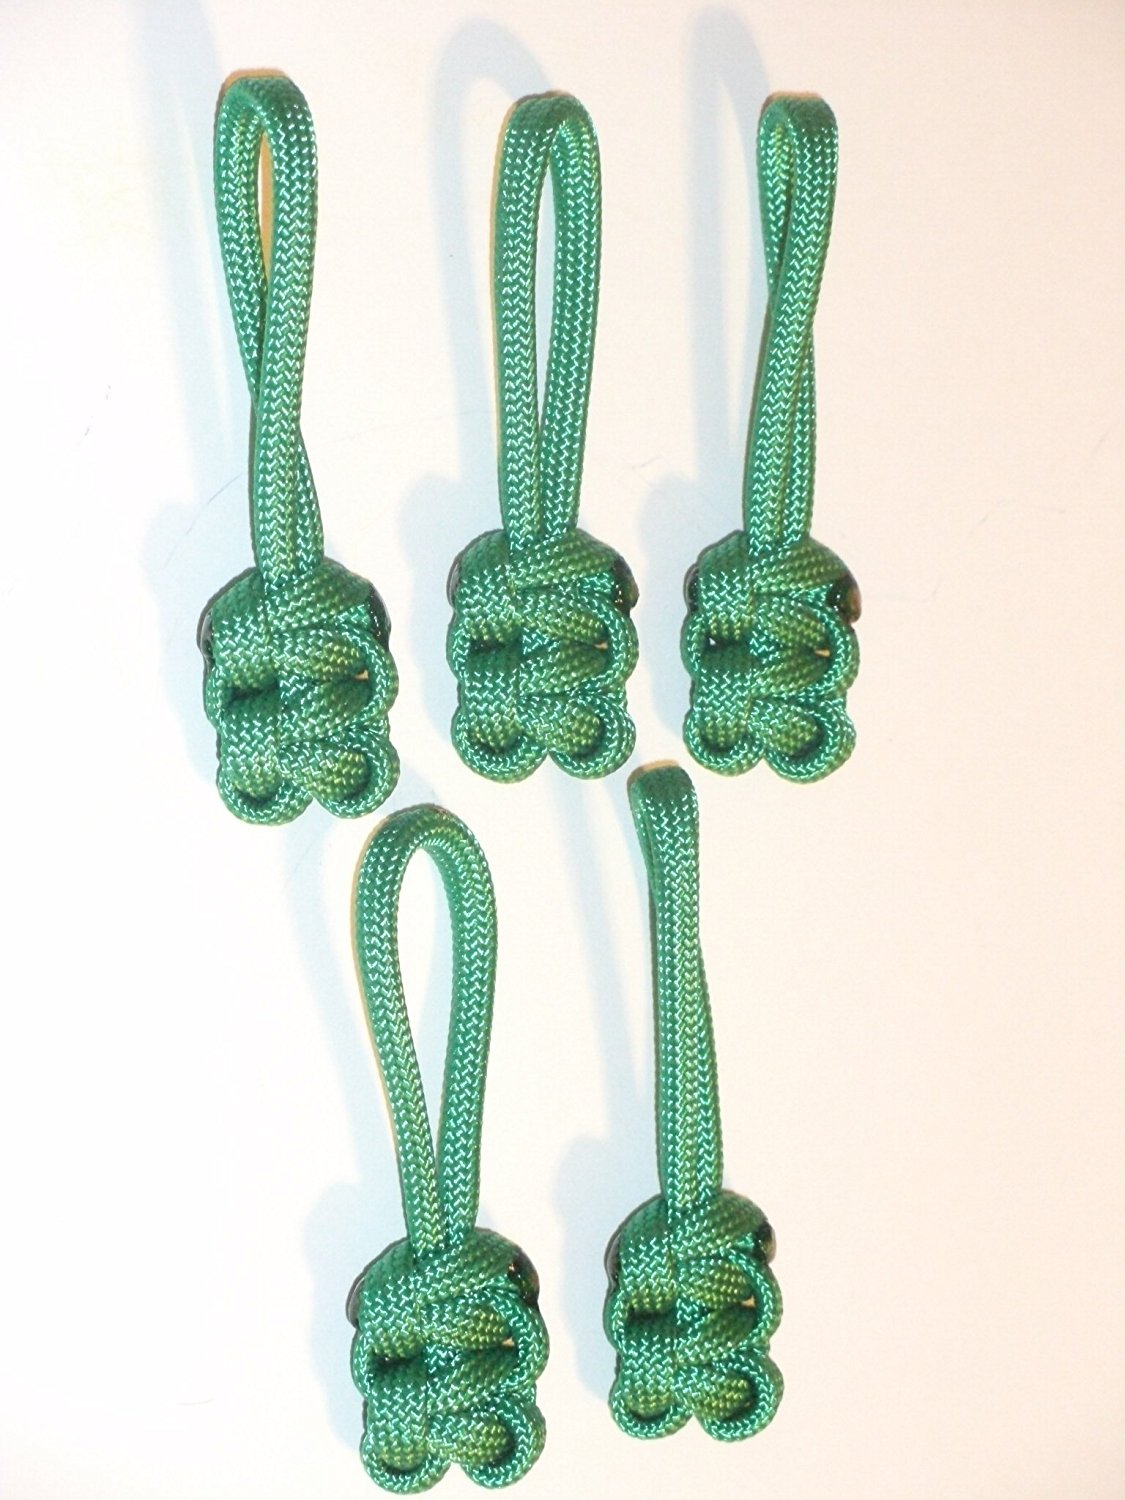 RedVex Paracord Zipper Pulls / Lanyards - Lot of 5 - ~2.5 - Green